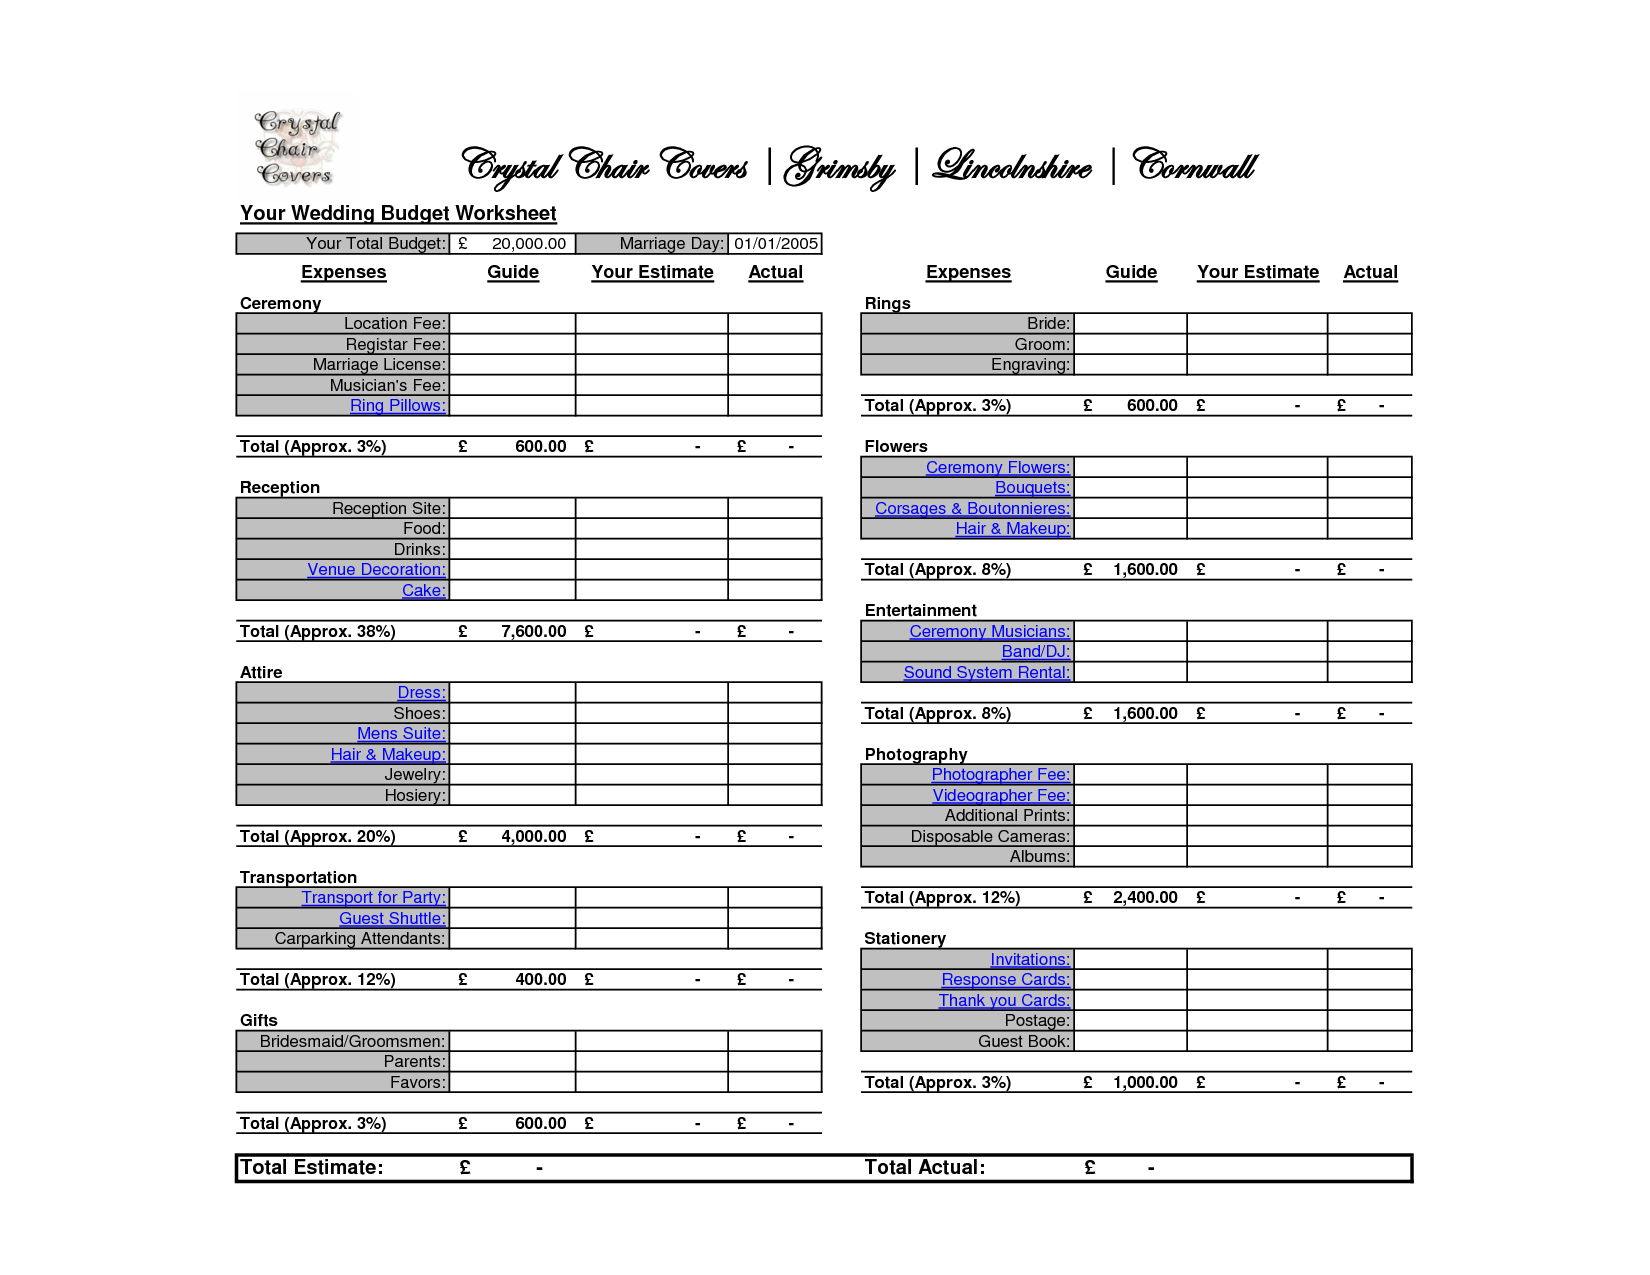 Wedding budget spreadsheet google laobingkaisuo wedding budget spreadsheet google junglespirit Gallery